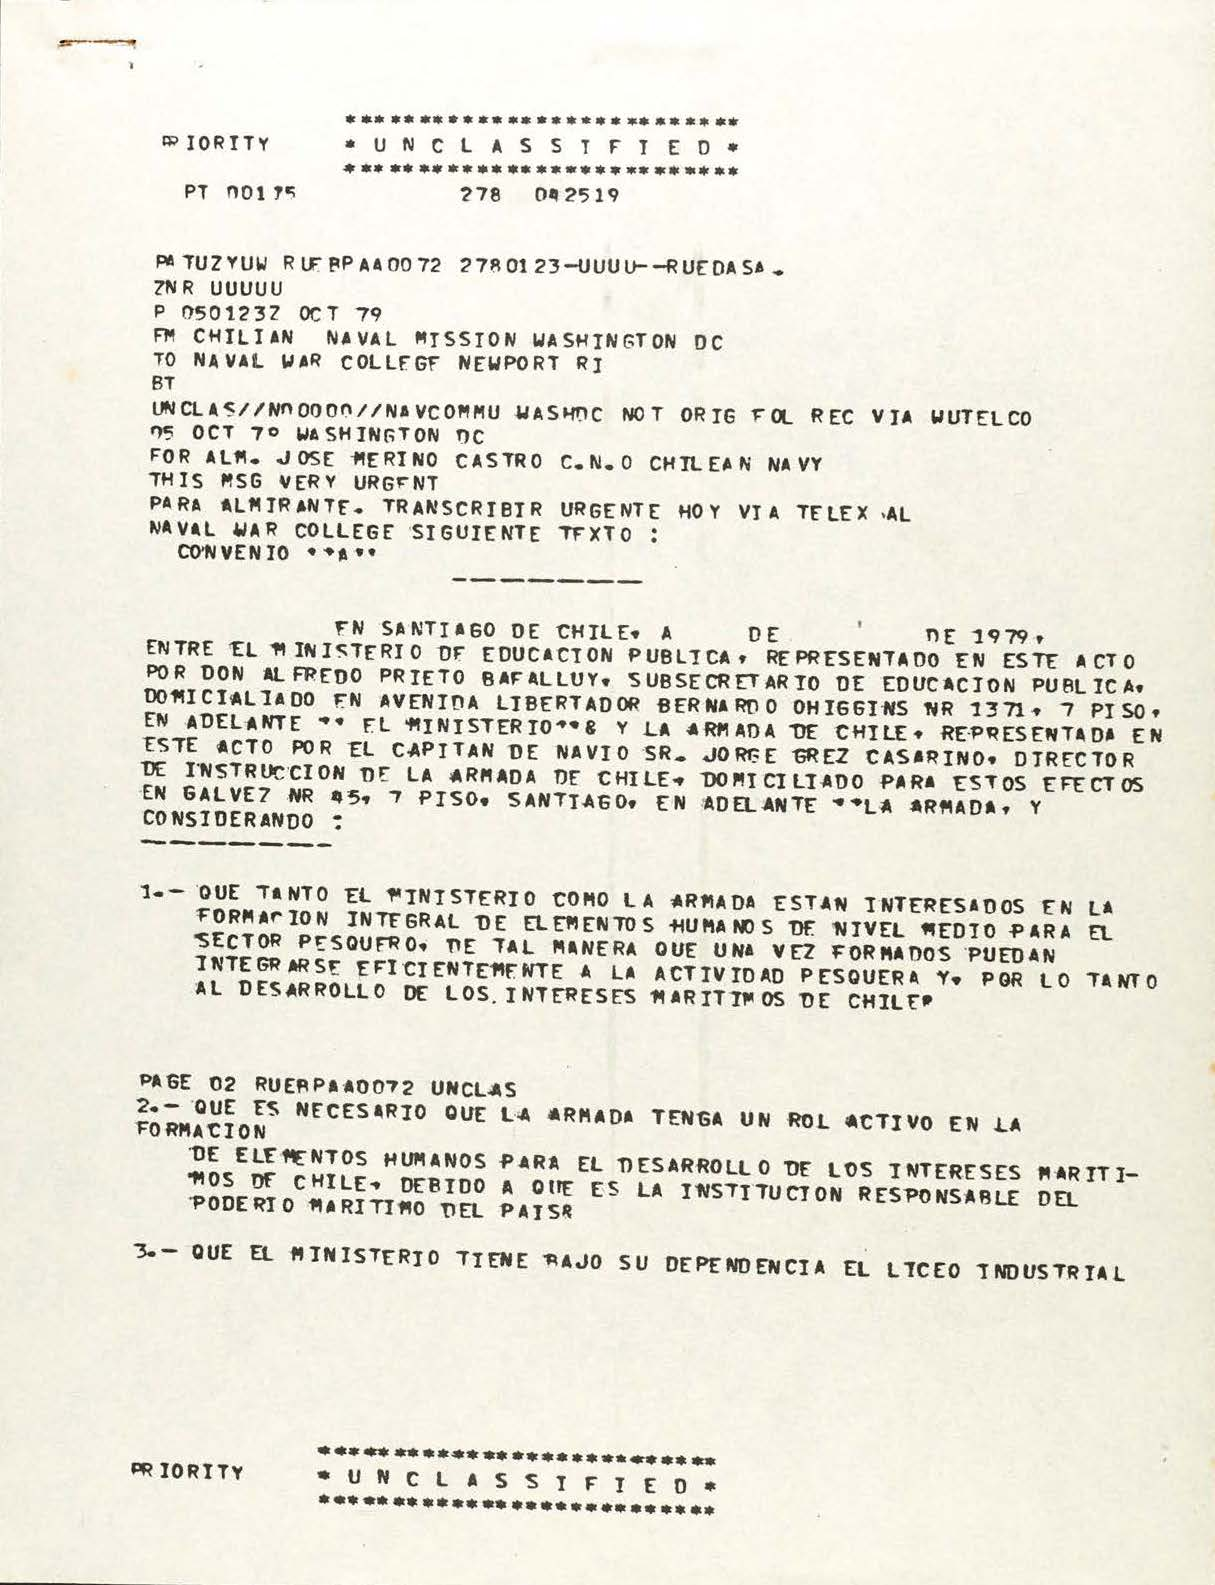 Teletype message to Chilean Navy CNO from the Chilean Naval Mission